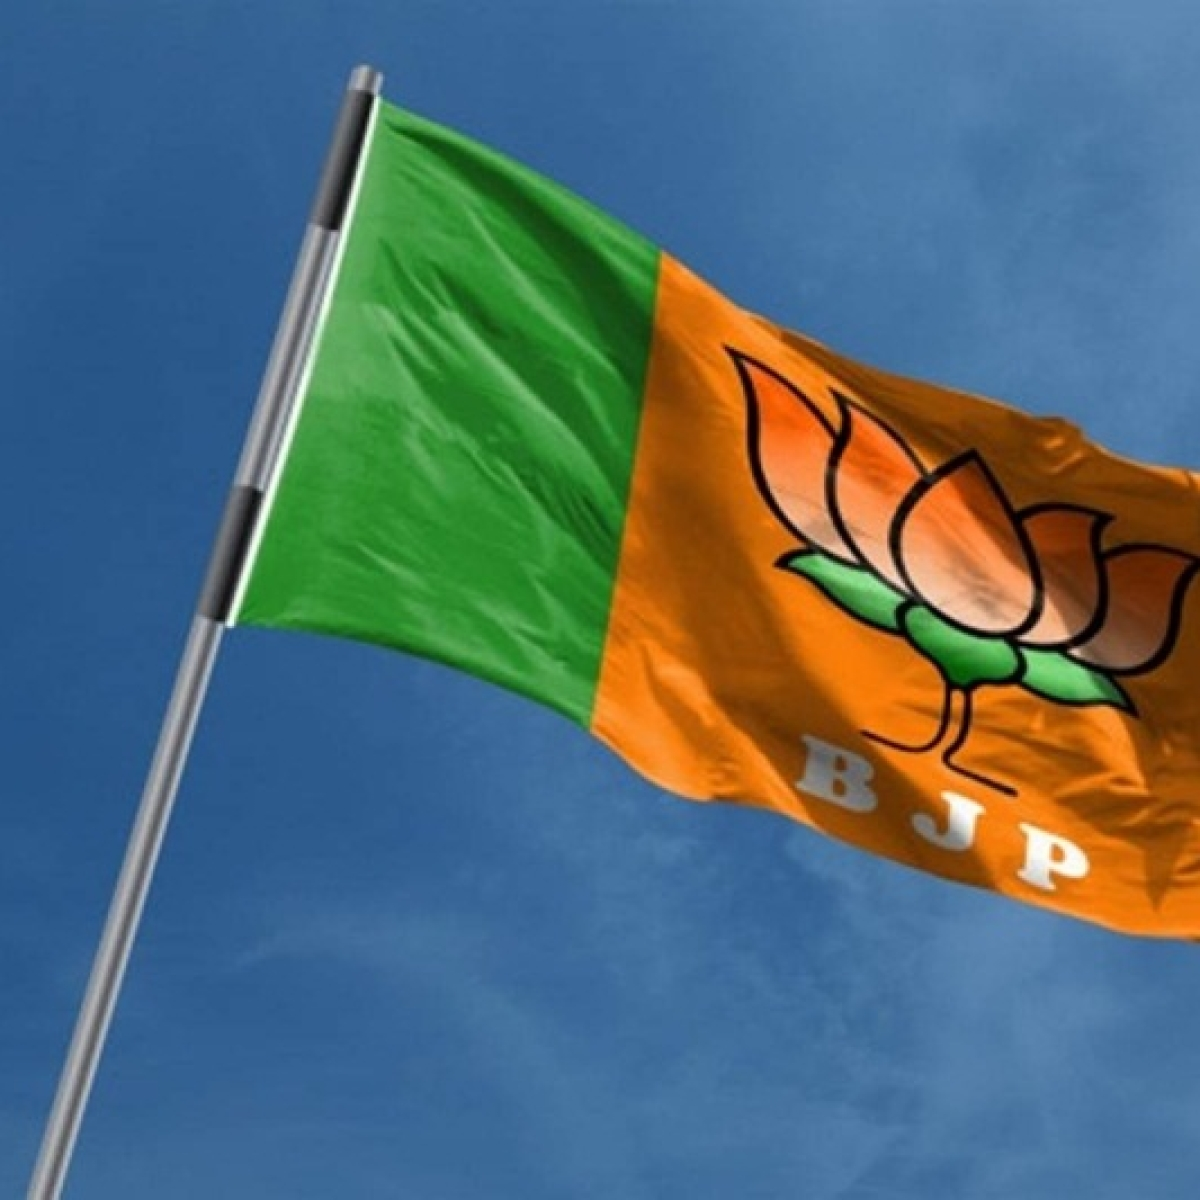 Commitment to farmers an 'article of faith' for BJP: Party spokesperson bats for new agri laws